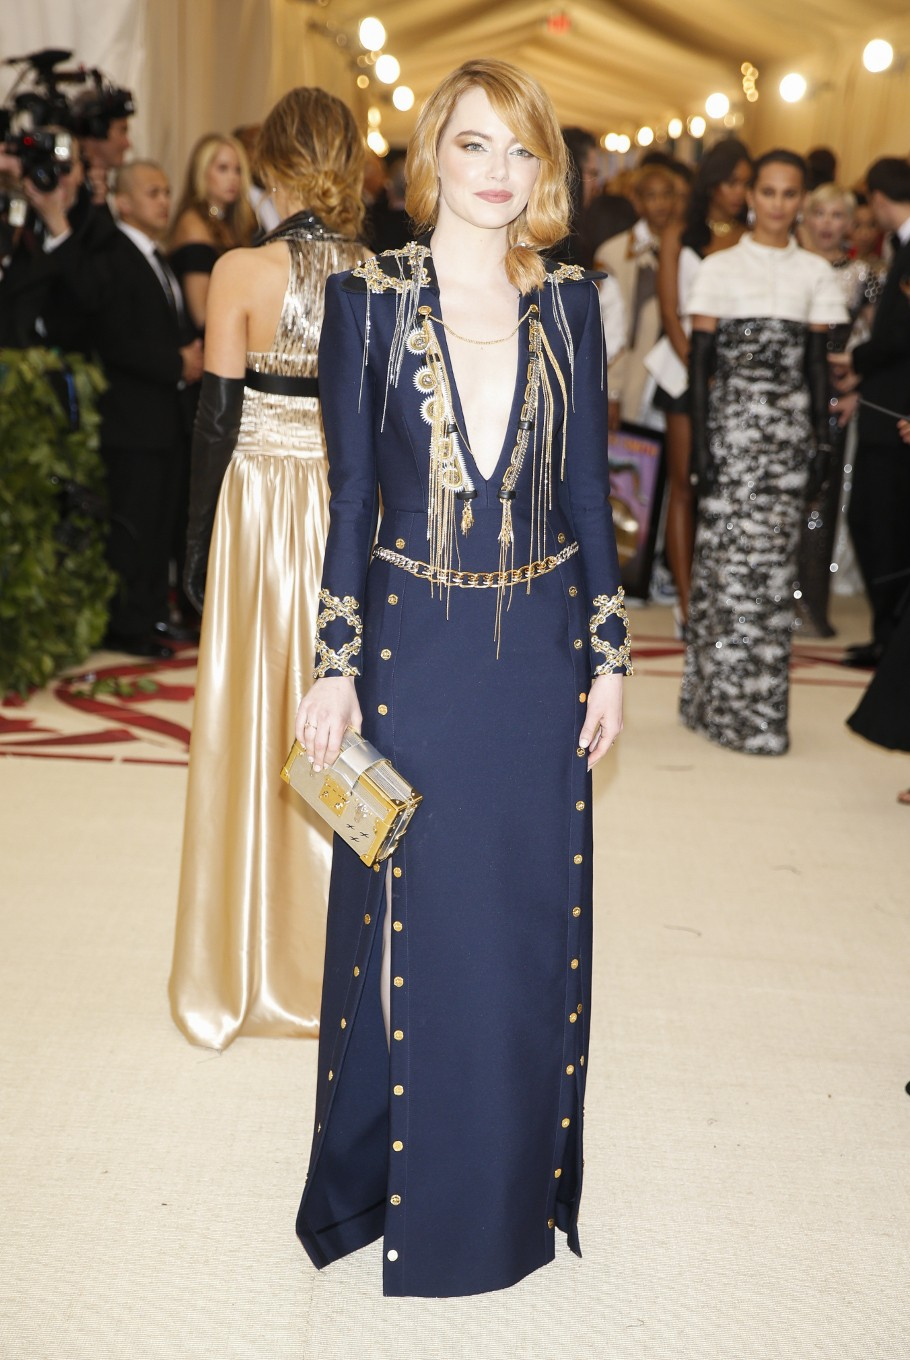 Actor Emma Stone arrives at the Metropolitan Museum of Art Costume Institute Gala (Met Gala) to celebrate the opening of 'Heavenly Bodies: Fashion and the Catholic Imagination' in the Manhattan borough of New York, U.S., May 7, 2018.